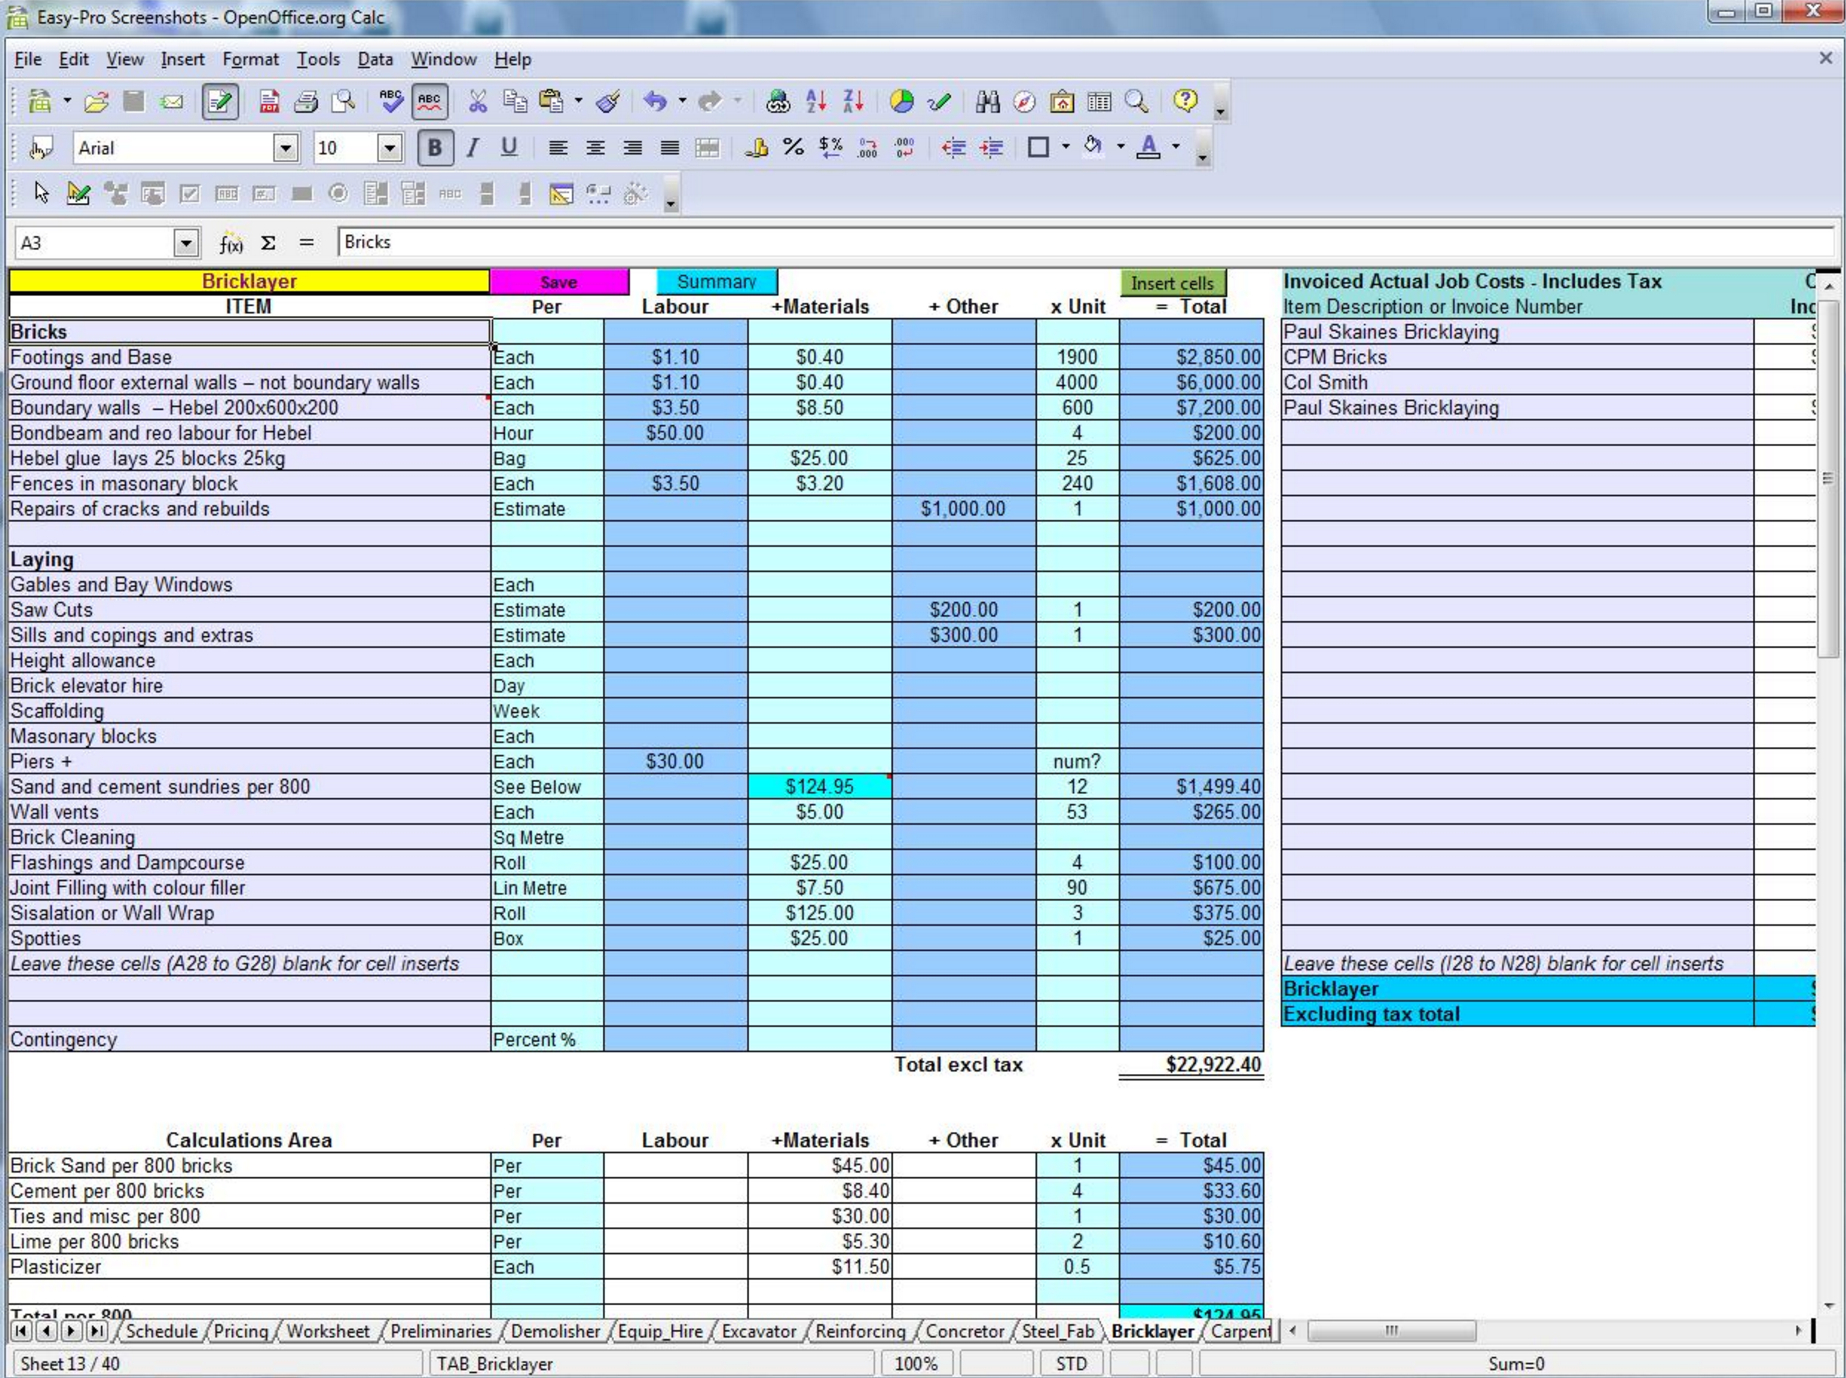 5 Free Construction Estimating & Takeoff Products Perfect For Smbs Inside Construction Estimating Spreadsheets